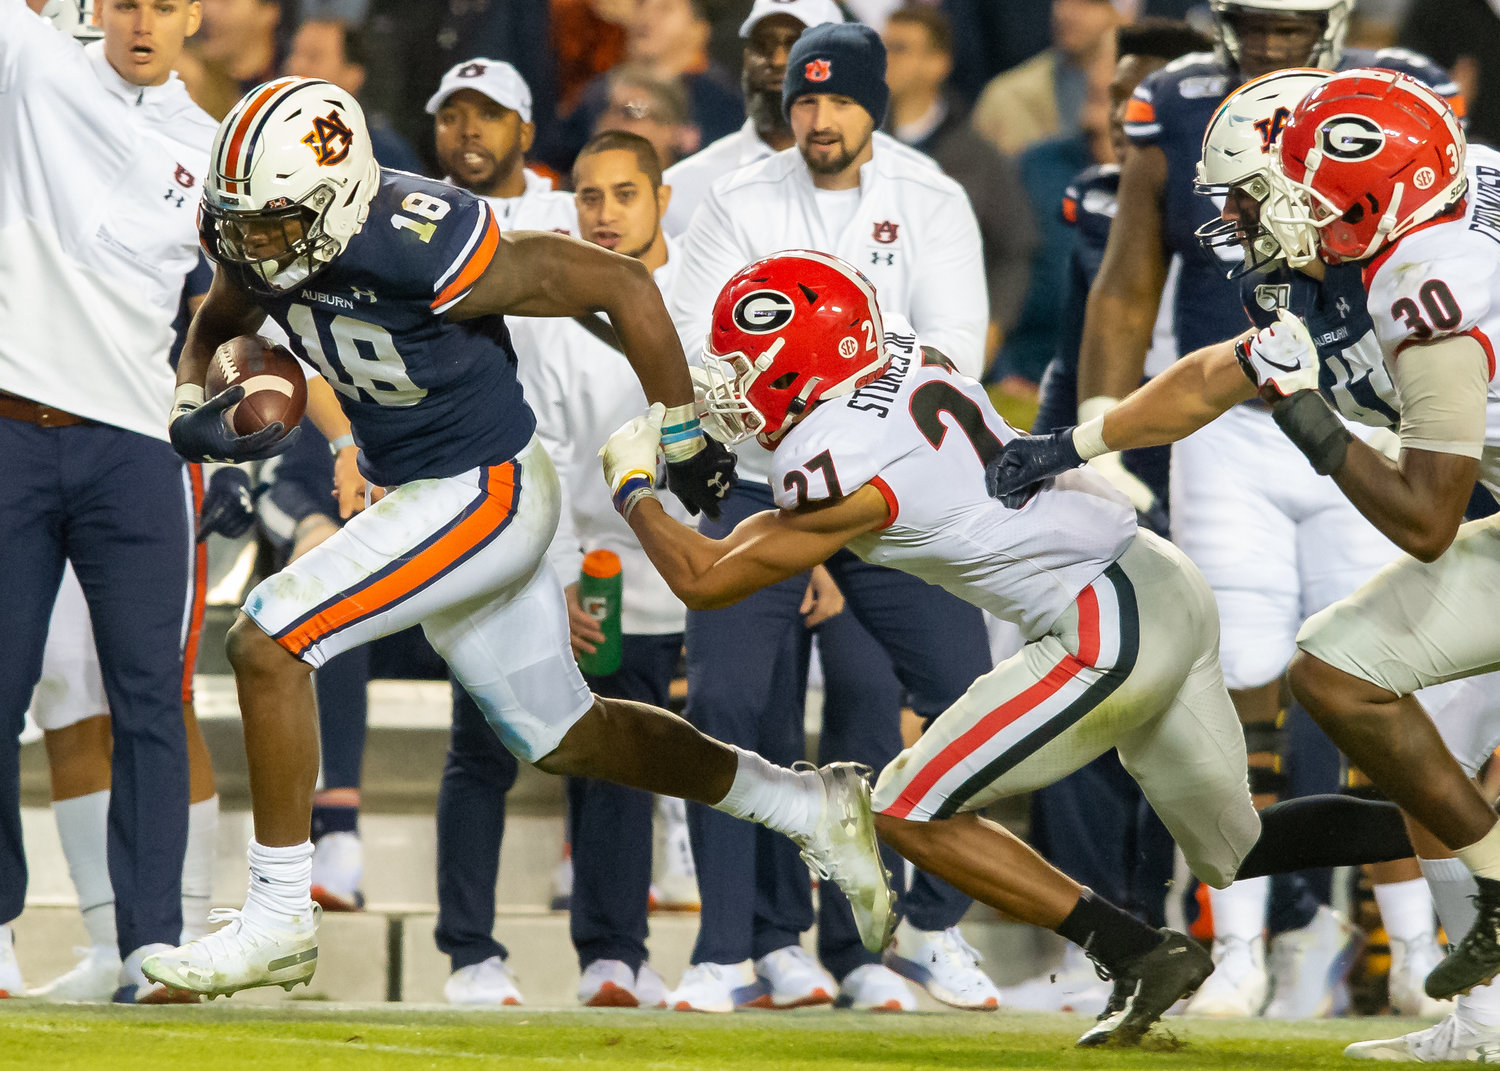 Auburn Tigers wide receiver Seth Williams (18) runs past Georgia Bulldogs defensive back Eric Stokes (27) during the second half of Saturday's game, at Jordan-Hare Stadium in Auburn,, AL. Daily Mountain Eagle -  Jeff Johnsey